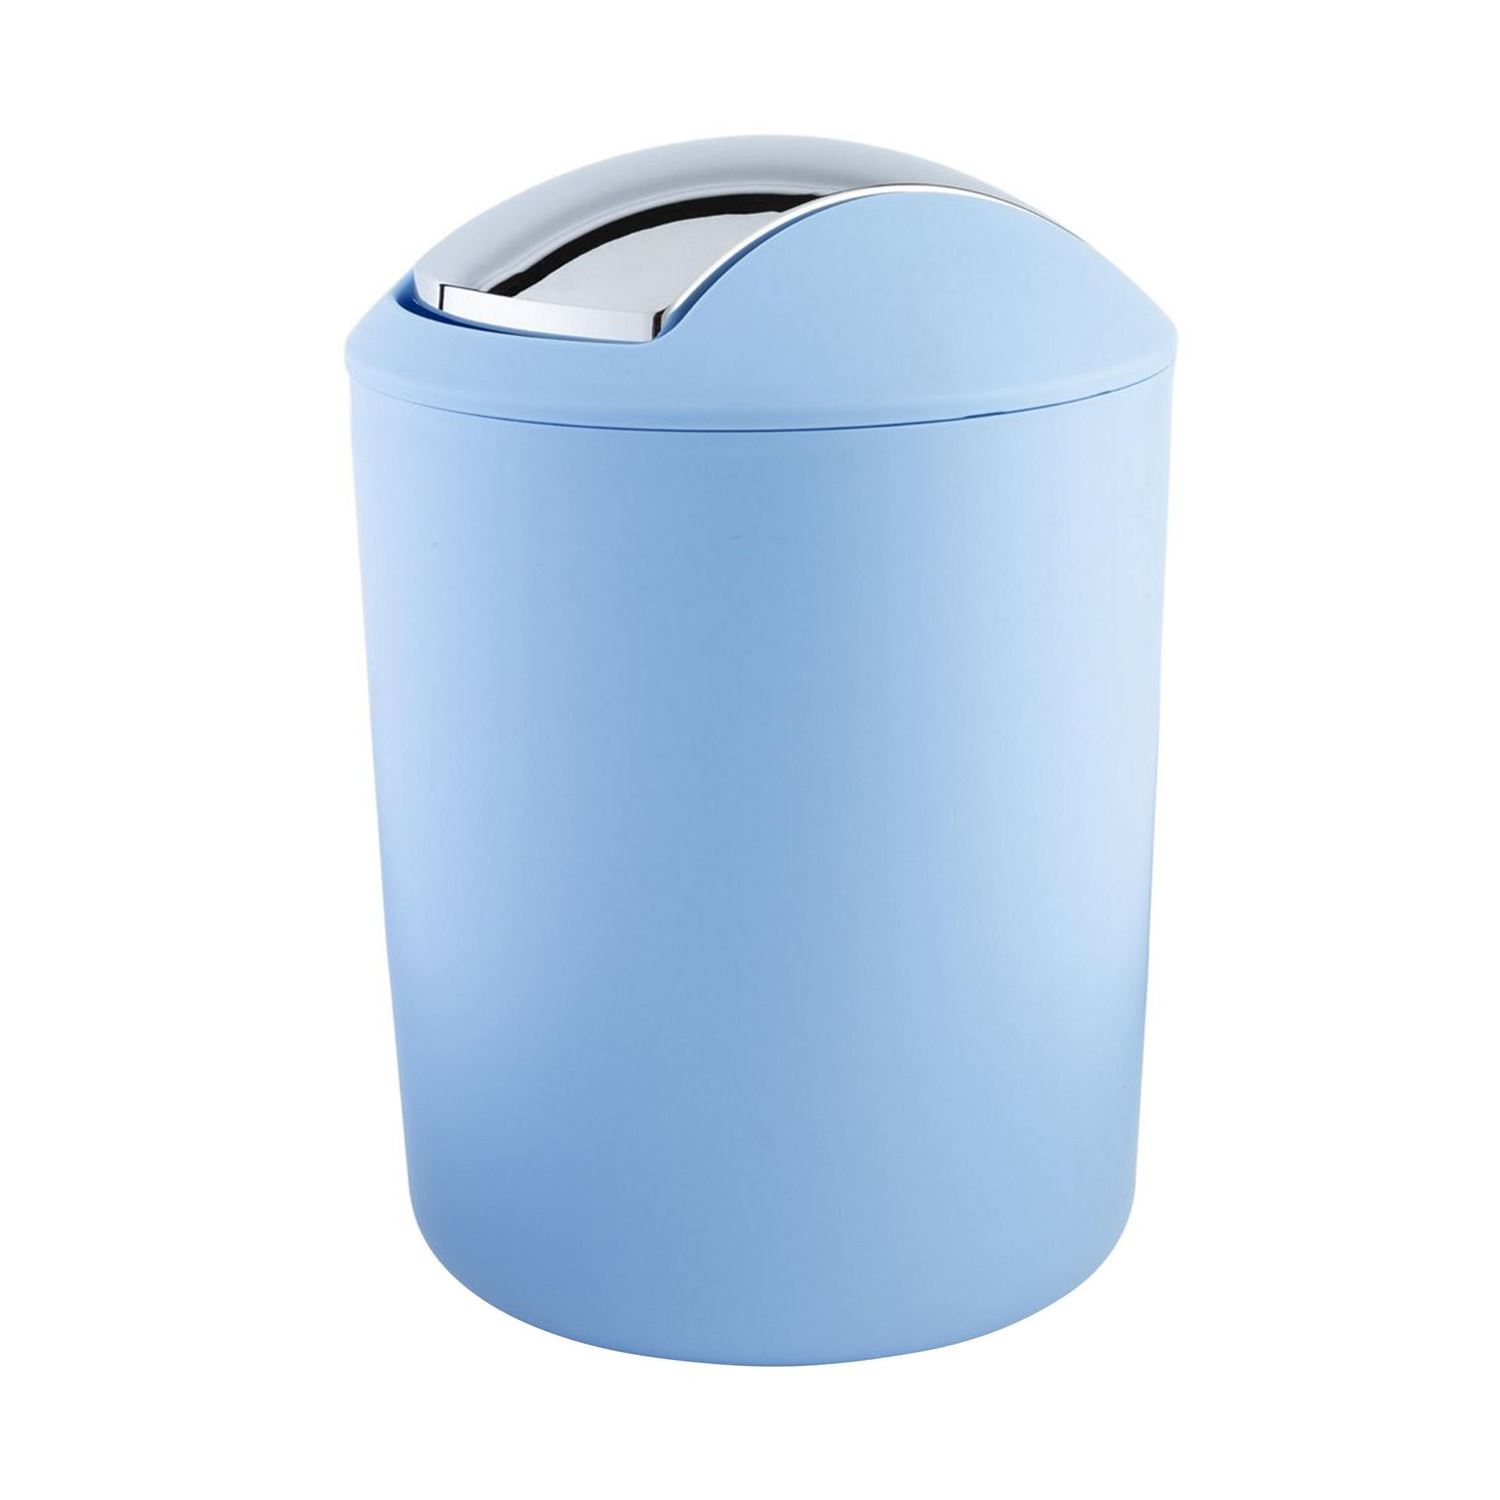 BATHROOM ACCESSORIES PLASTIC TOILET BRUSH & TOILET BIN